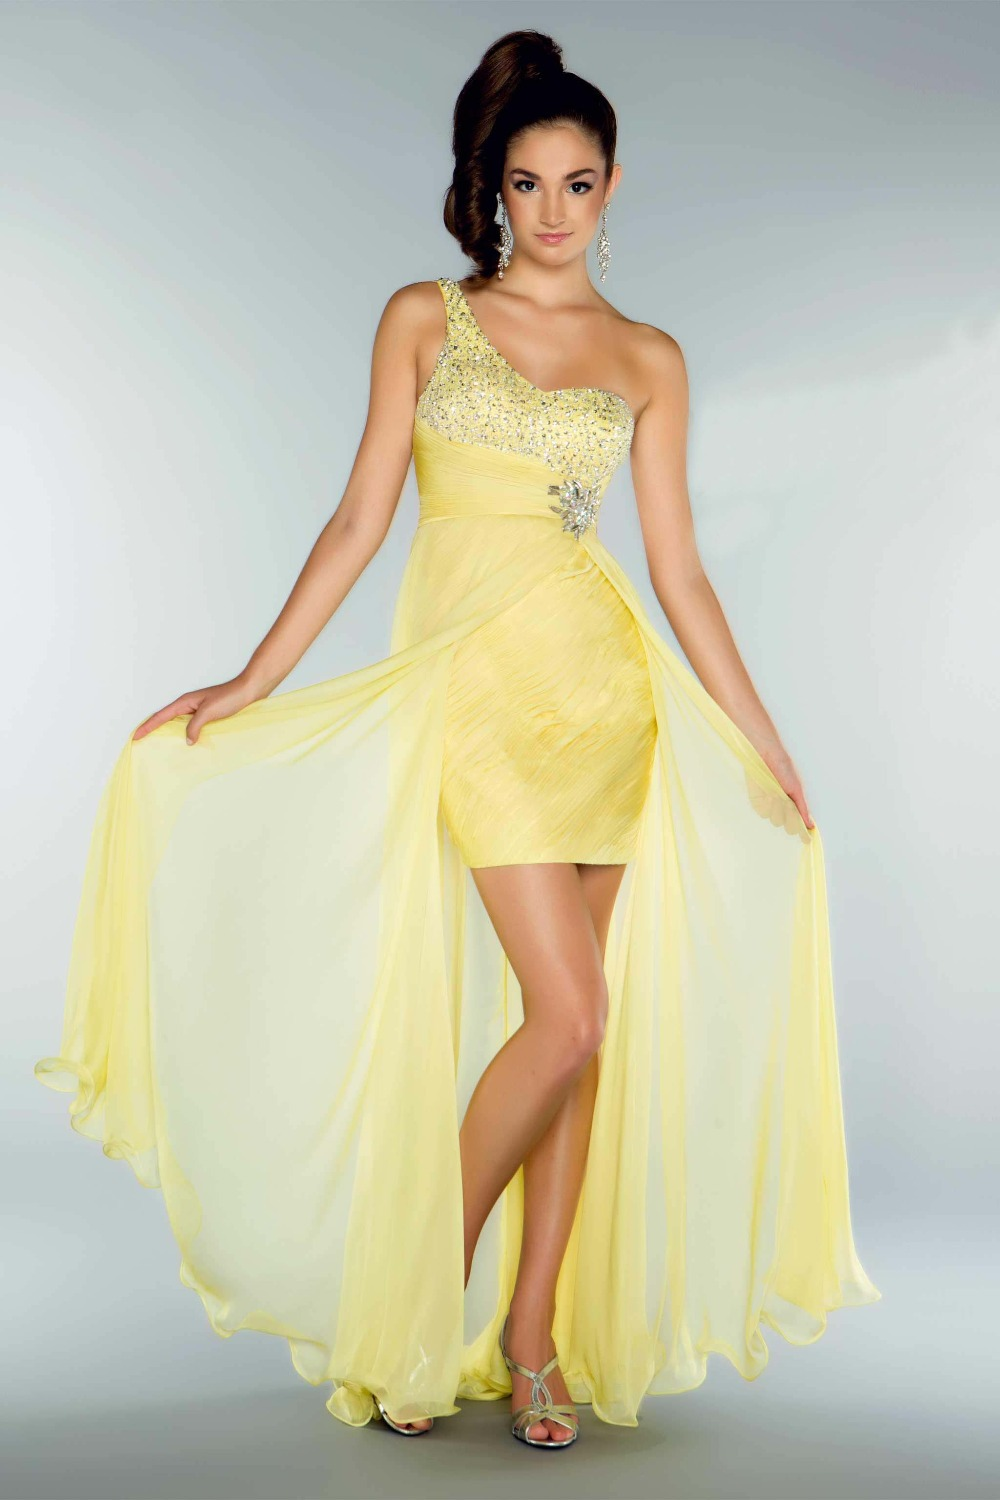 Formal evening dresses san diego - Best Dressed